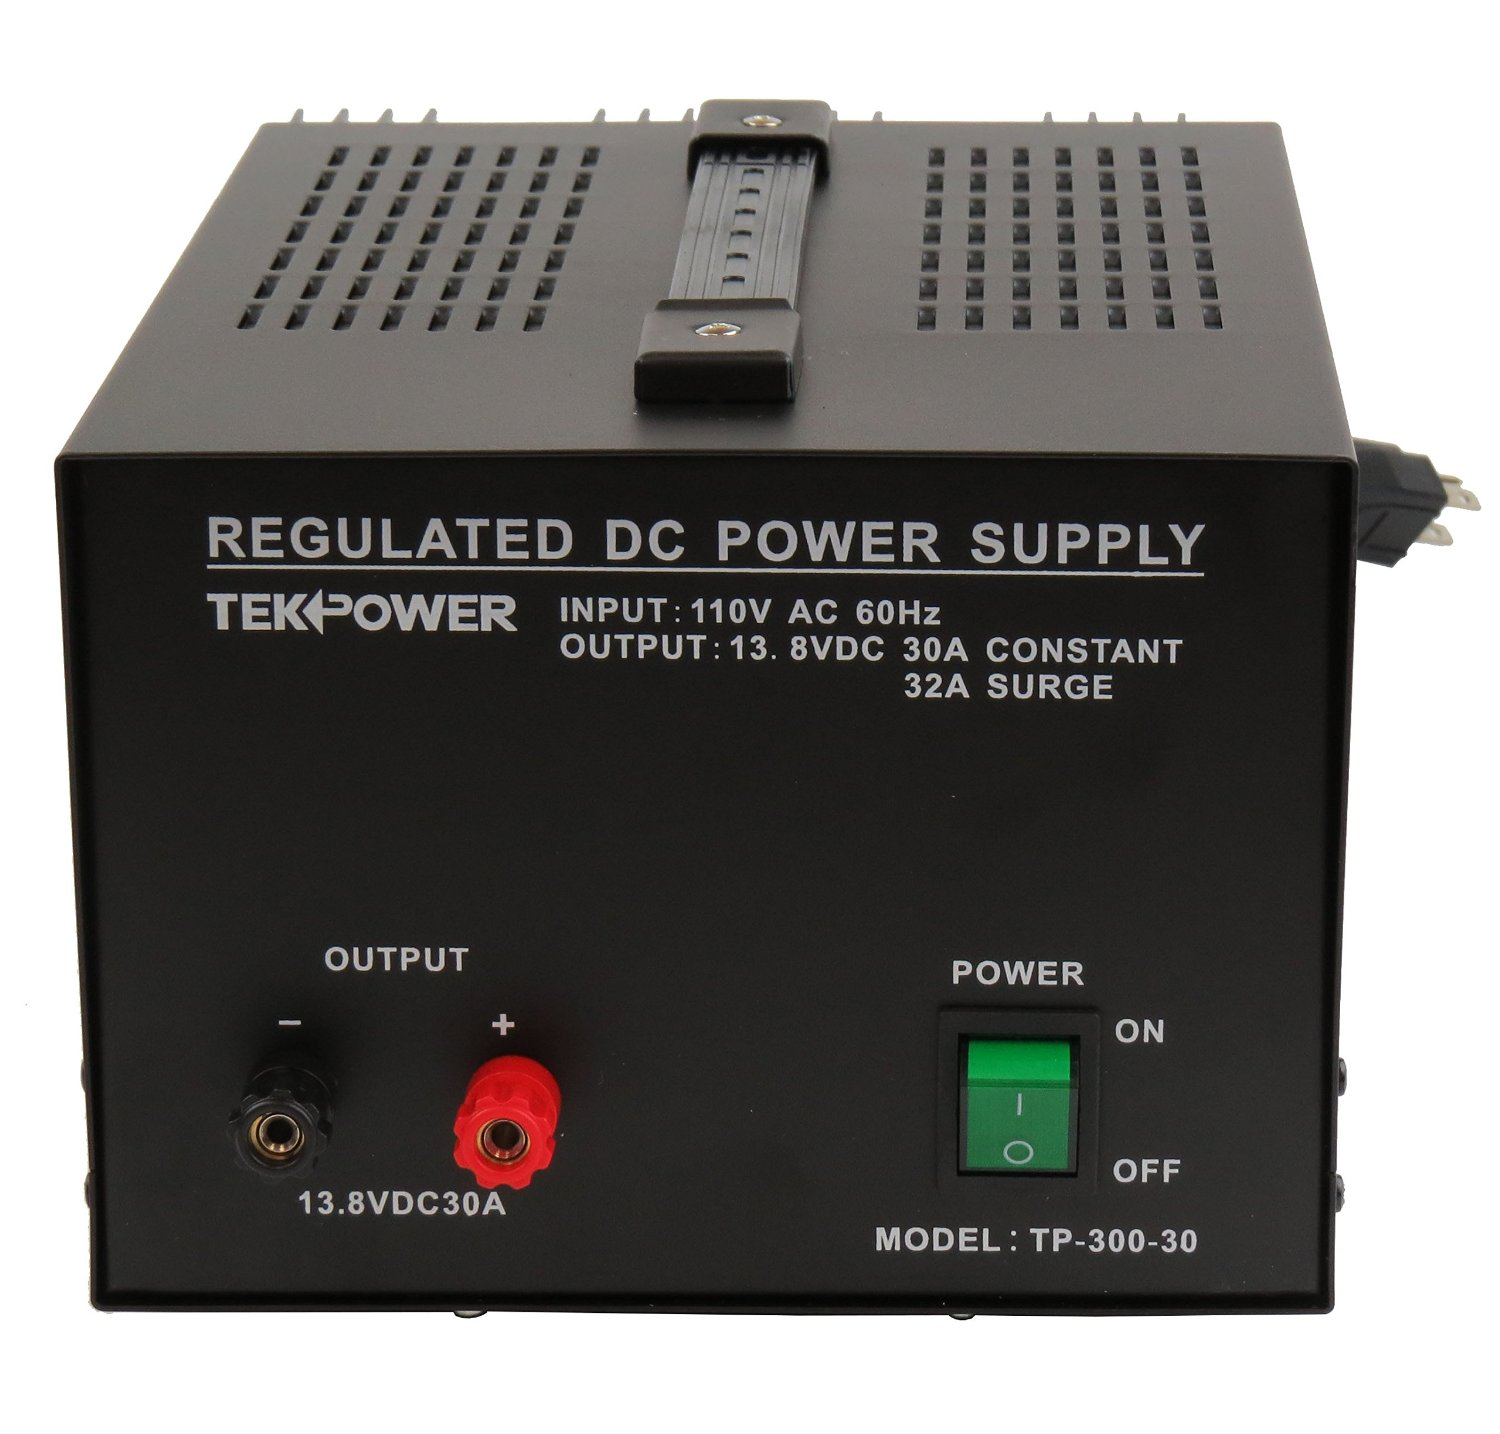 TekPower TP300-30 30 Amp DC 13.8V Regulated Power Supply with Fuse Protection (30A)